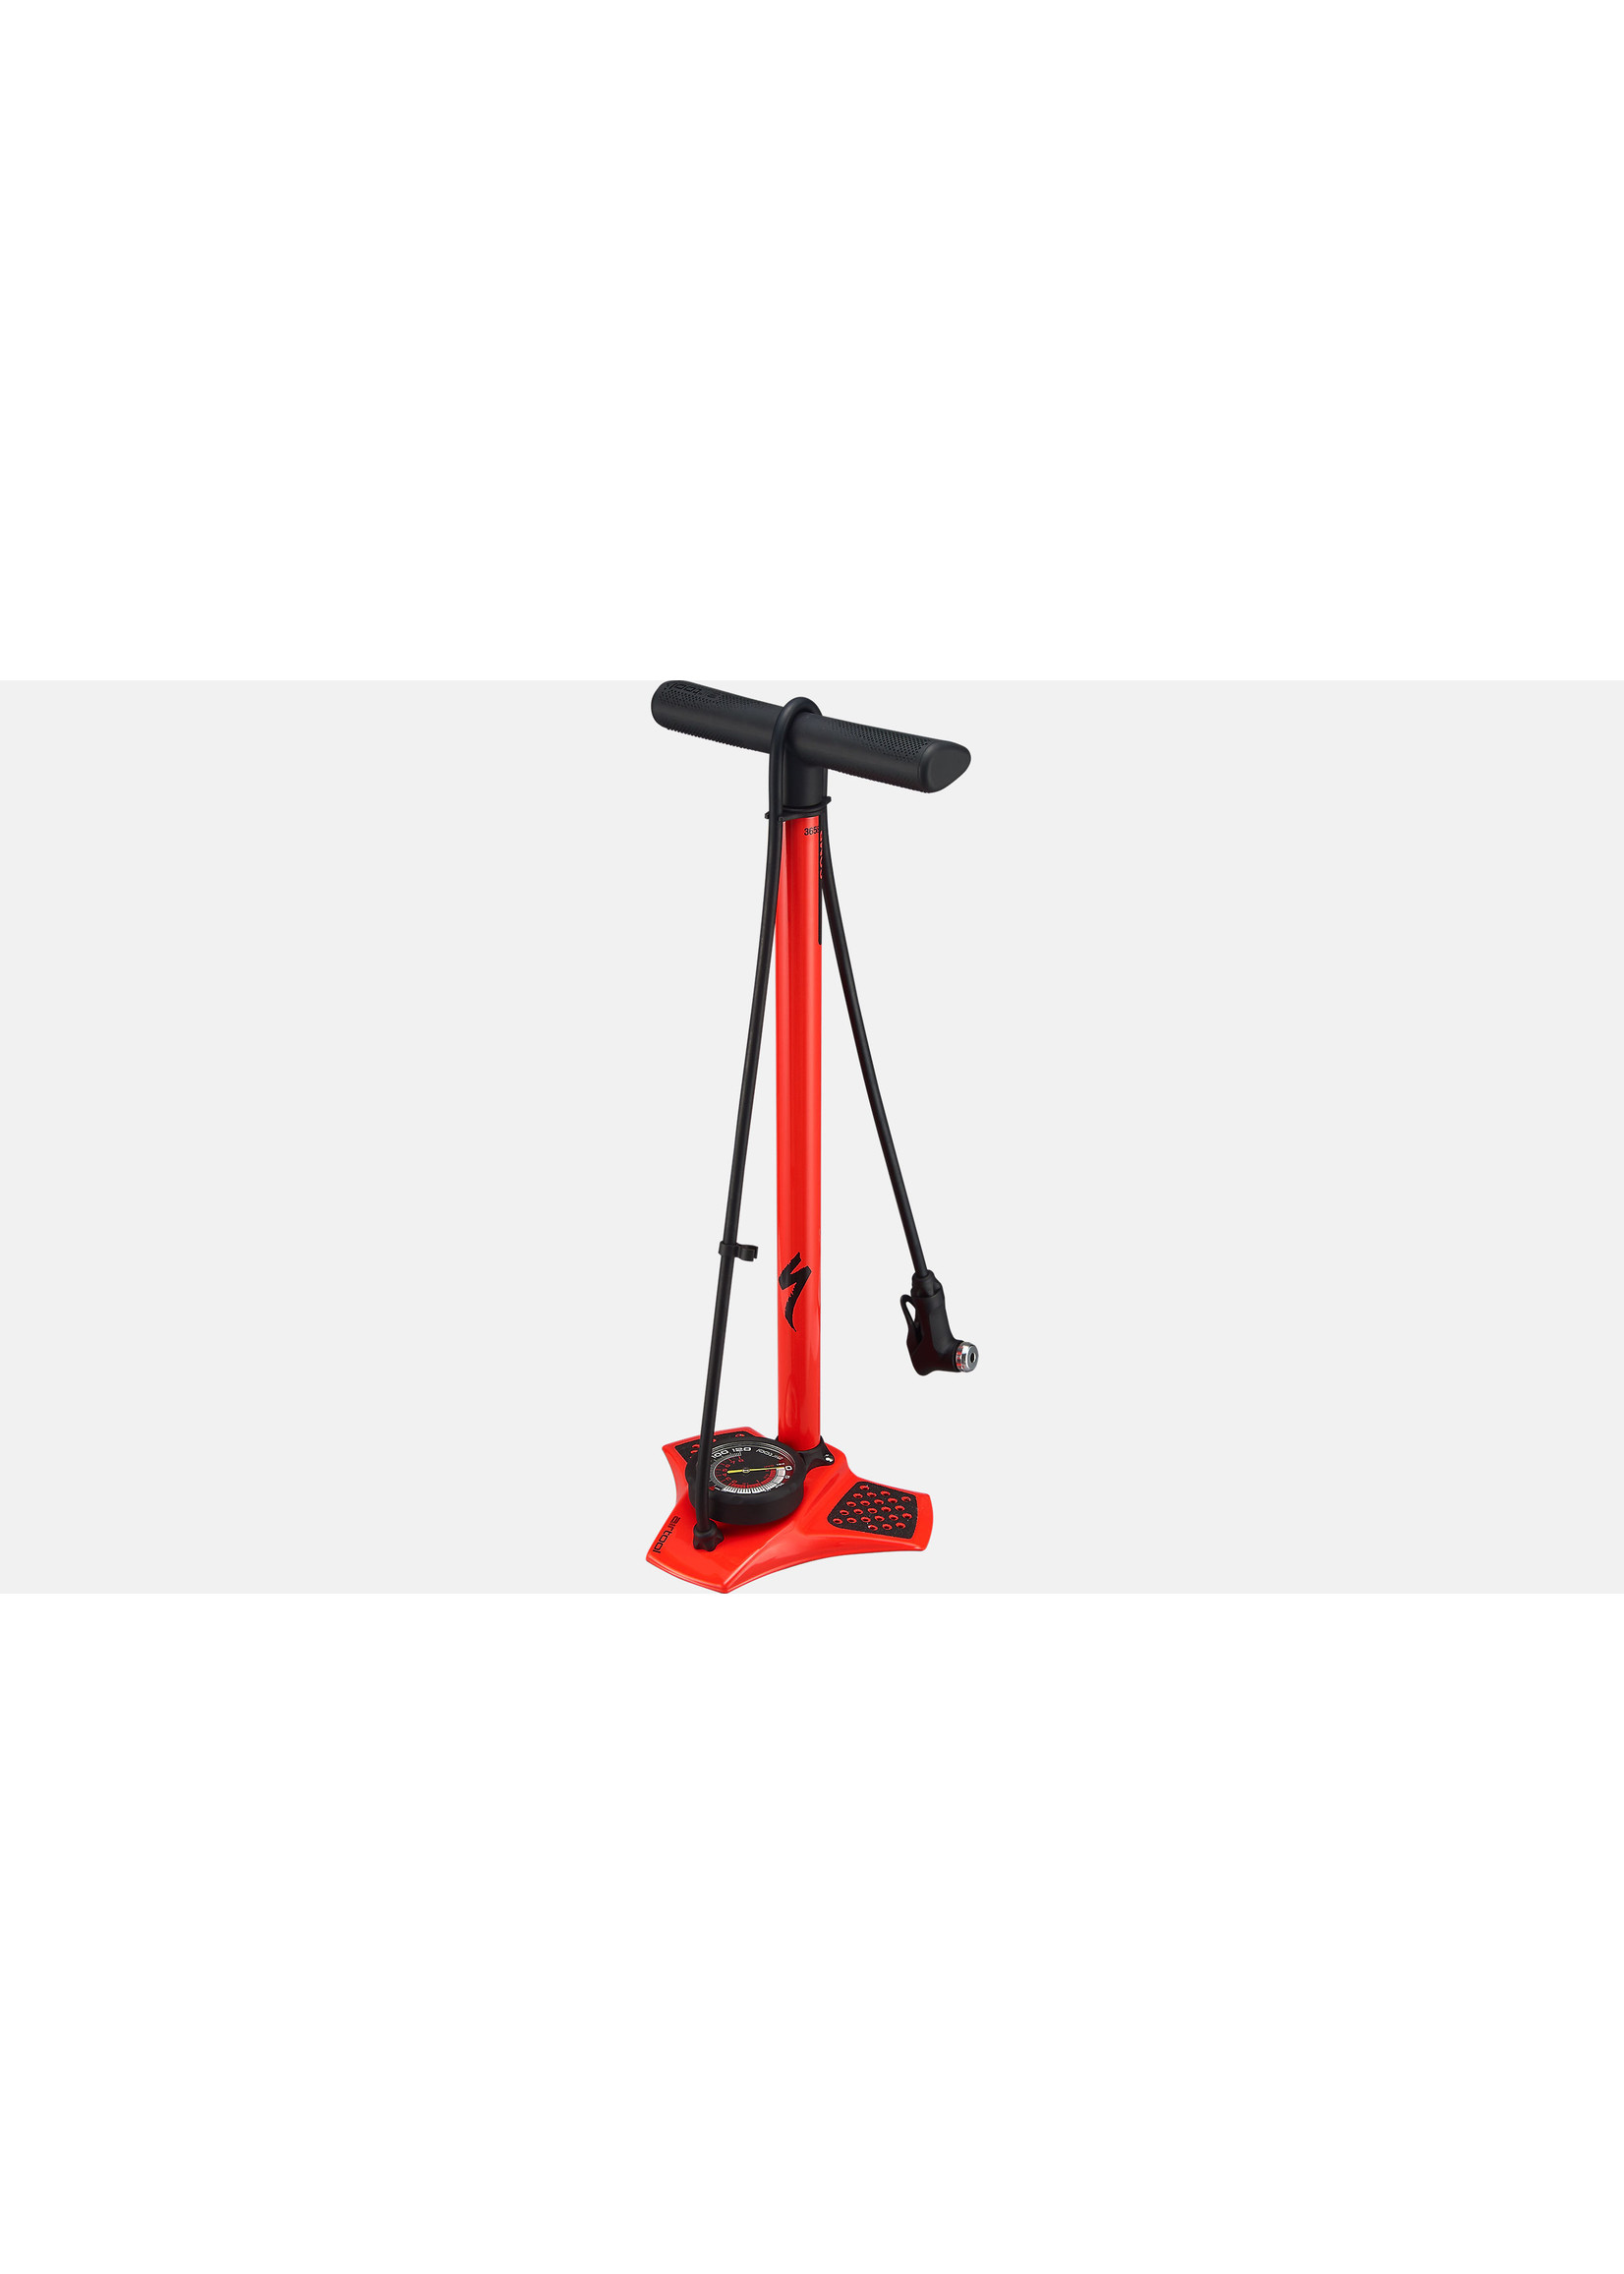 Specialized AIR TOOL COMP FLR PUMP RKTRED